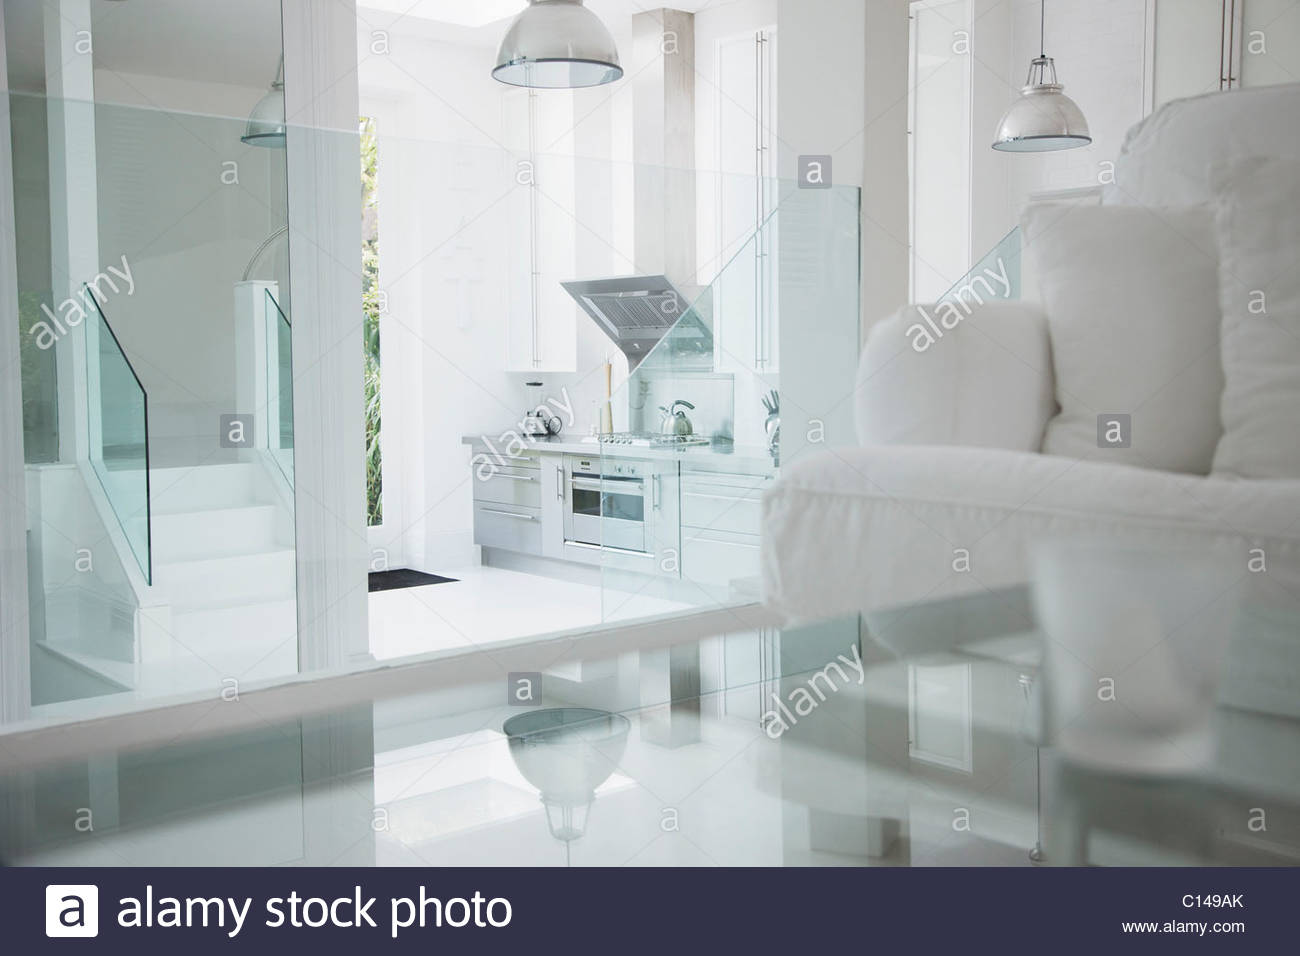 Elegant white living room and stainless steel kitchen - Stock Image